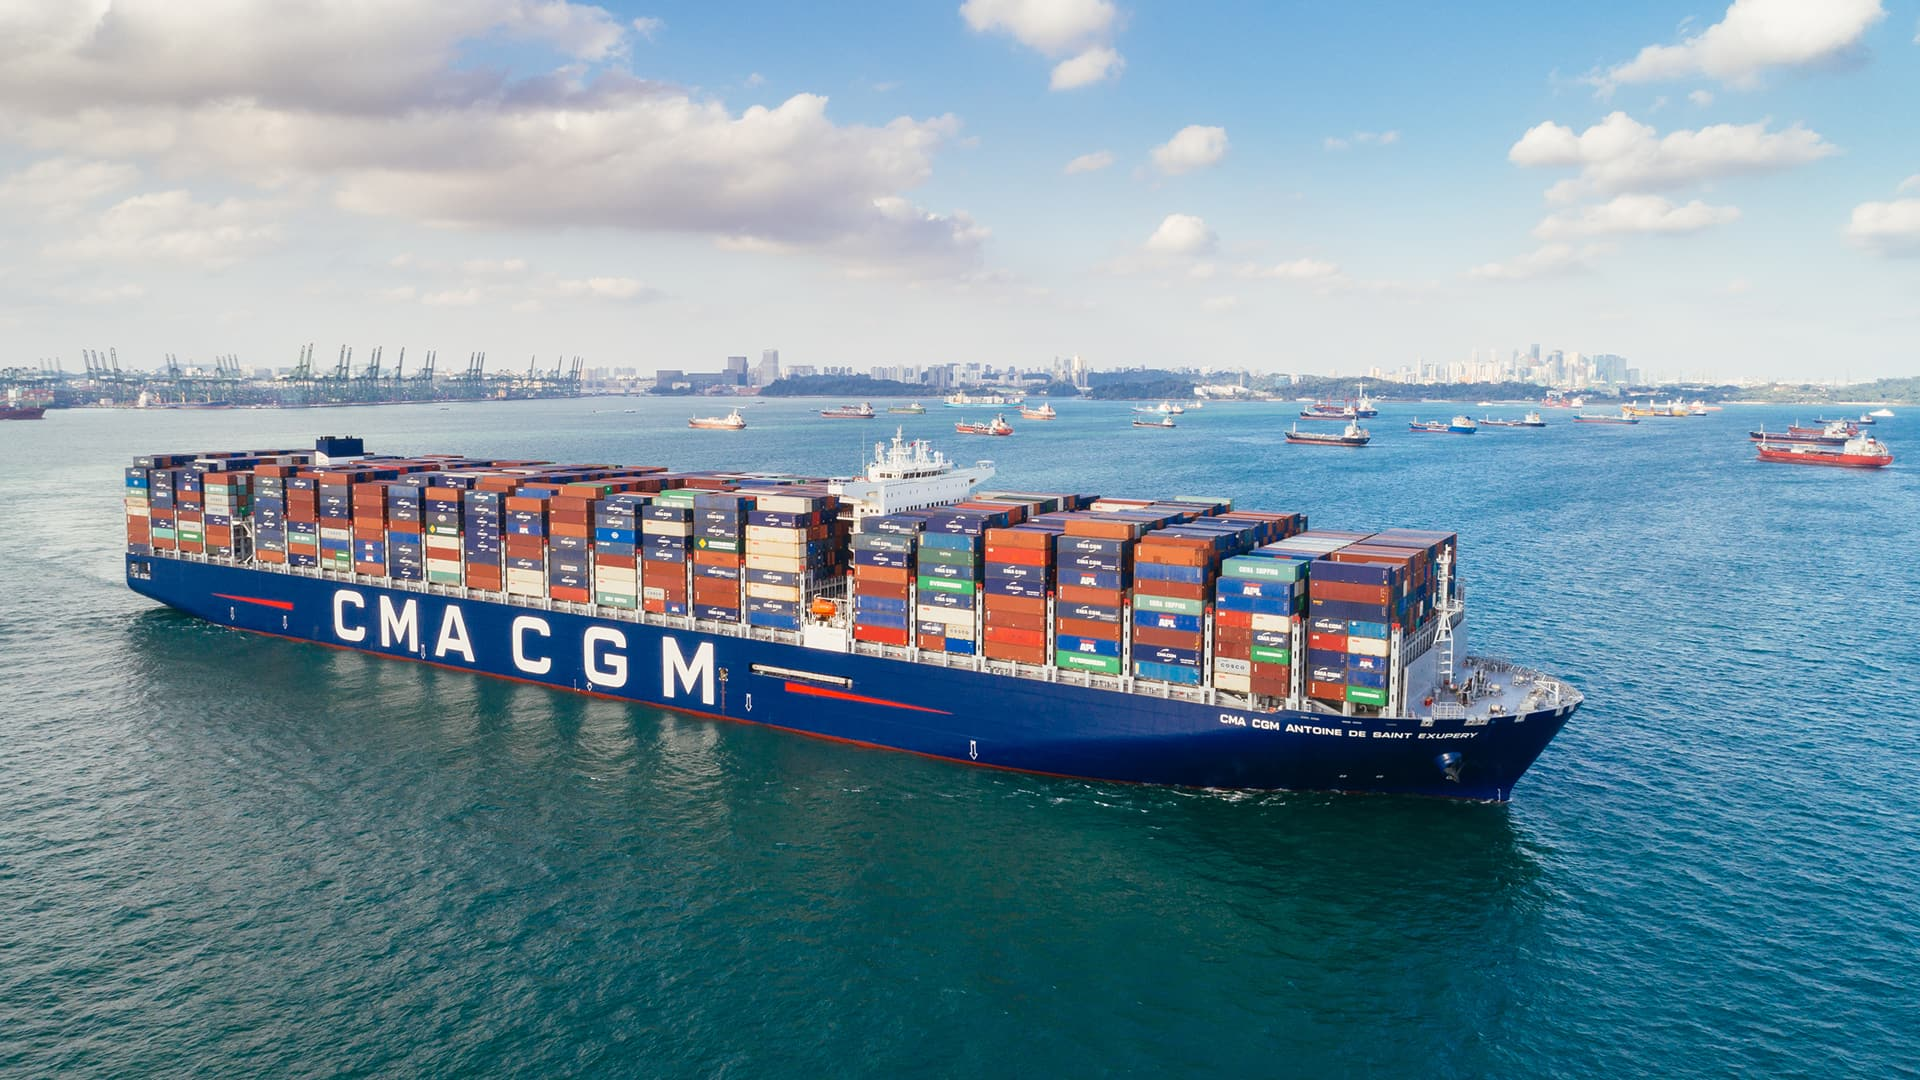 CMA CGM continues operations after cyber attack